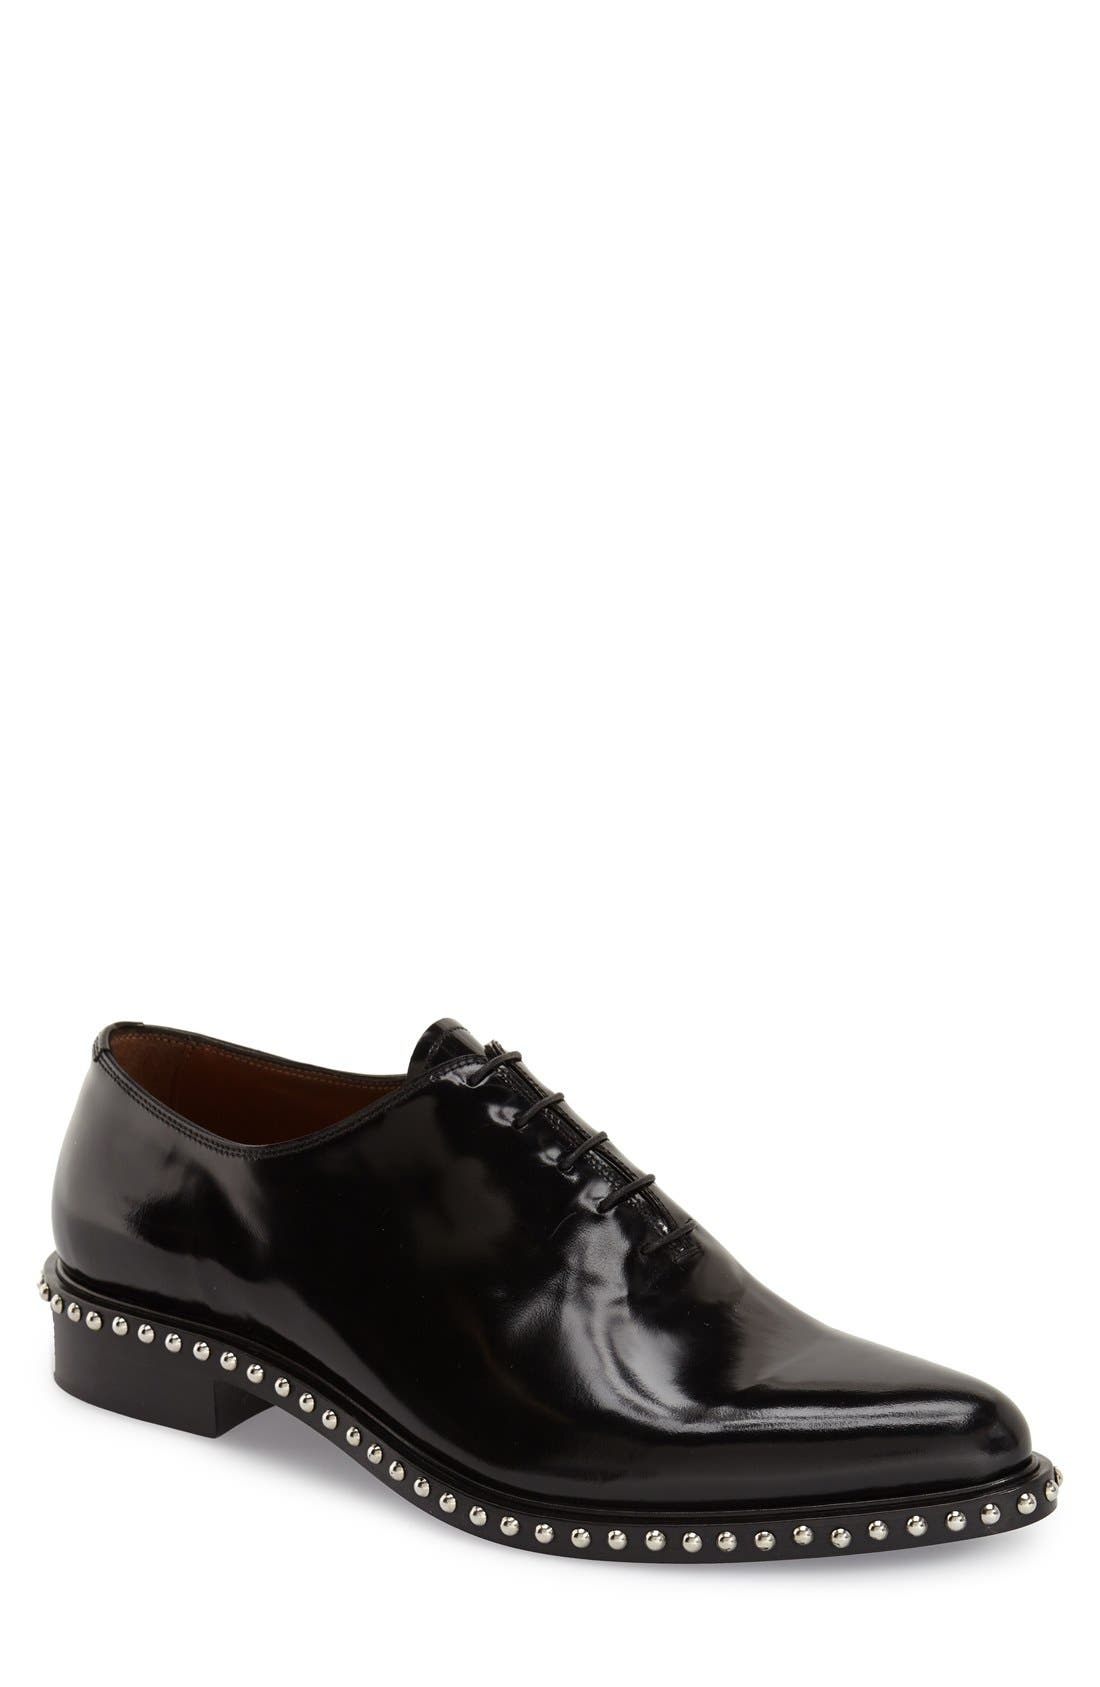 Alternate Image 1 Selected - Givenchy 'Iconic Richel' Oxford (Men)